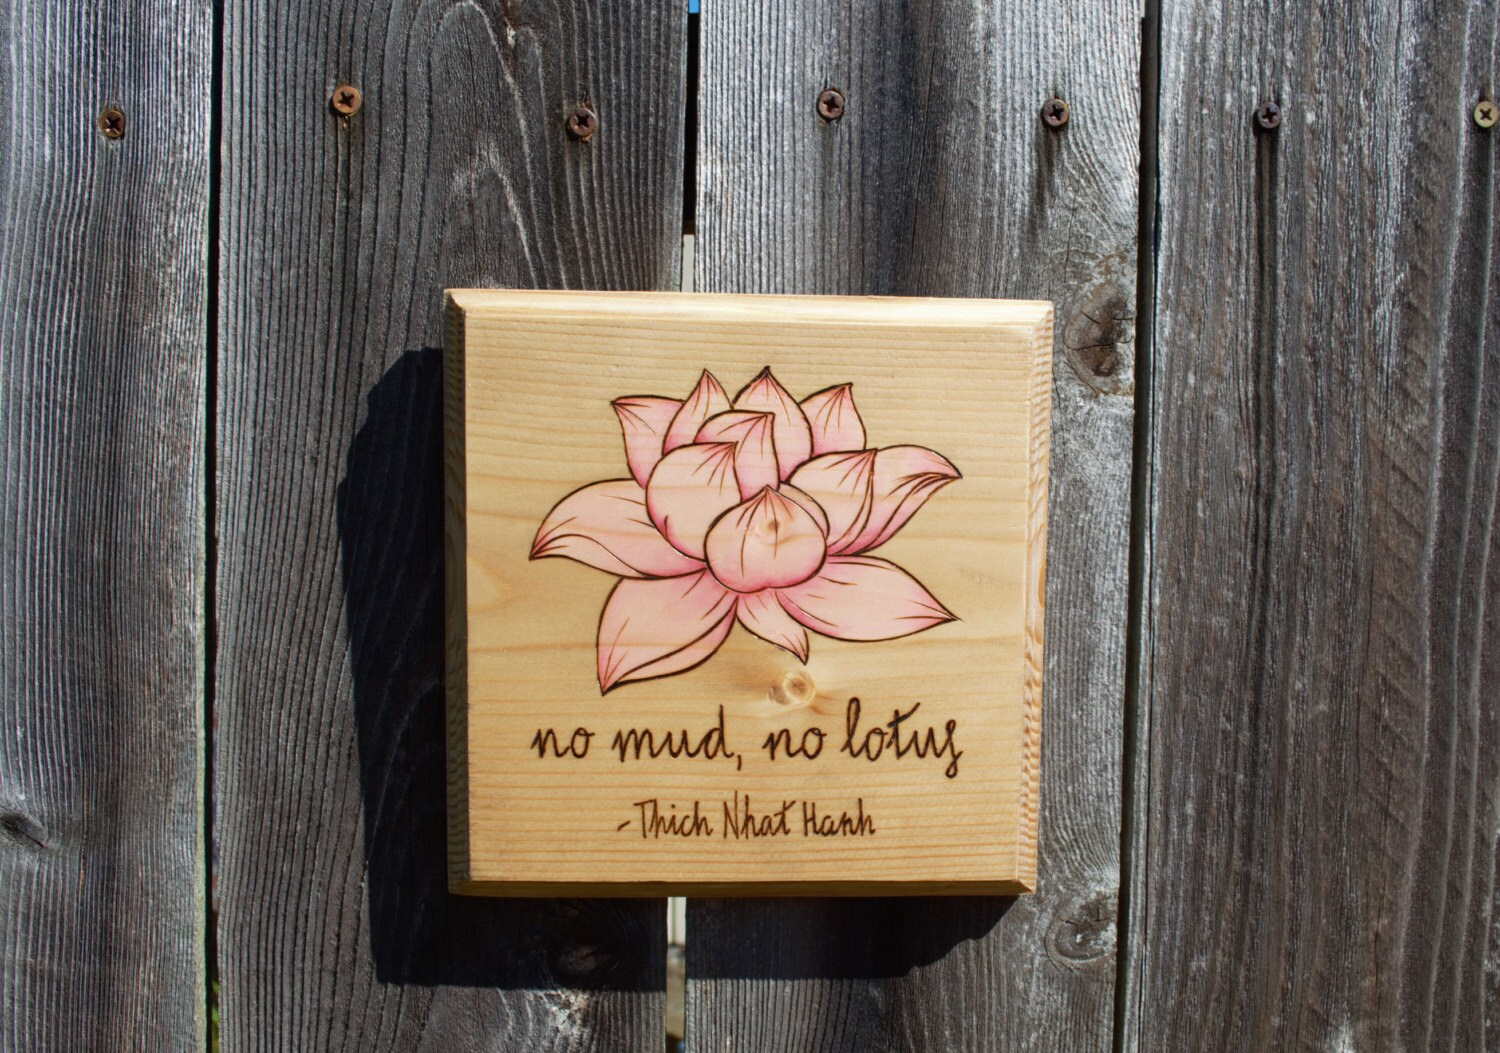 Lotus flower no mud no lotus thich nhat hanh wood burned sign zoom izmirmasajfo